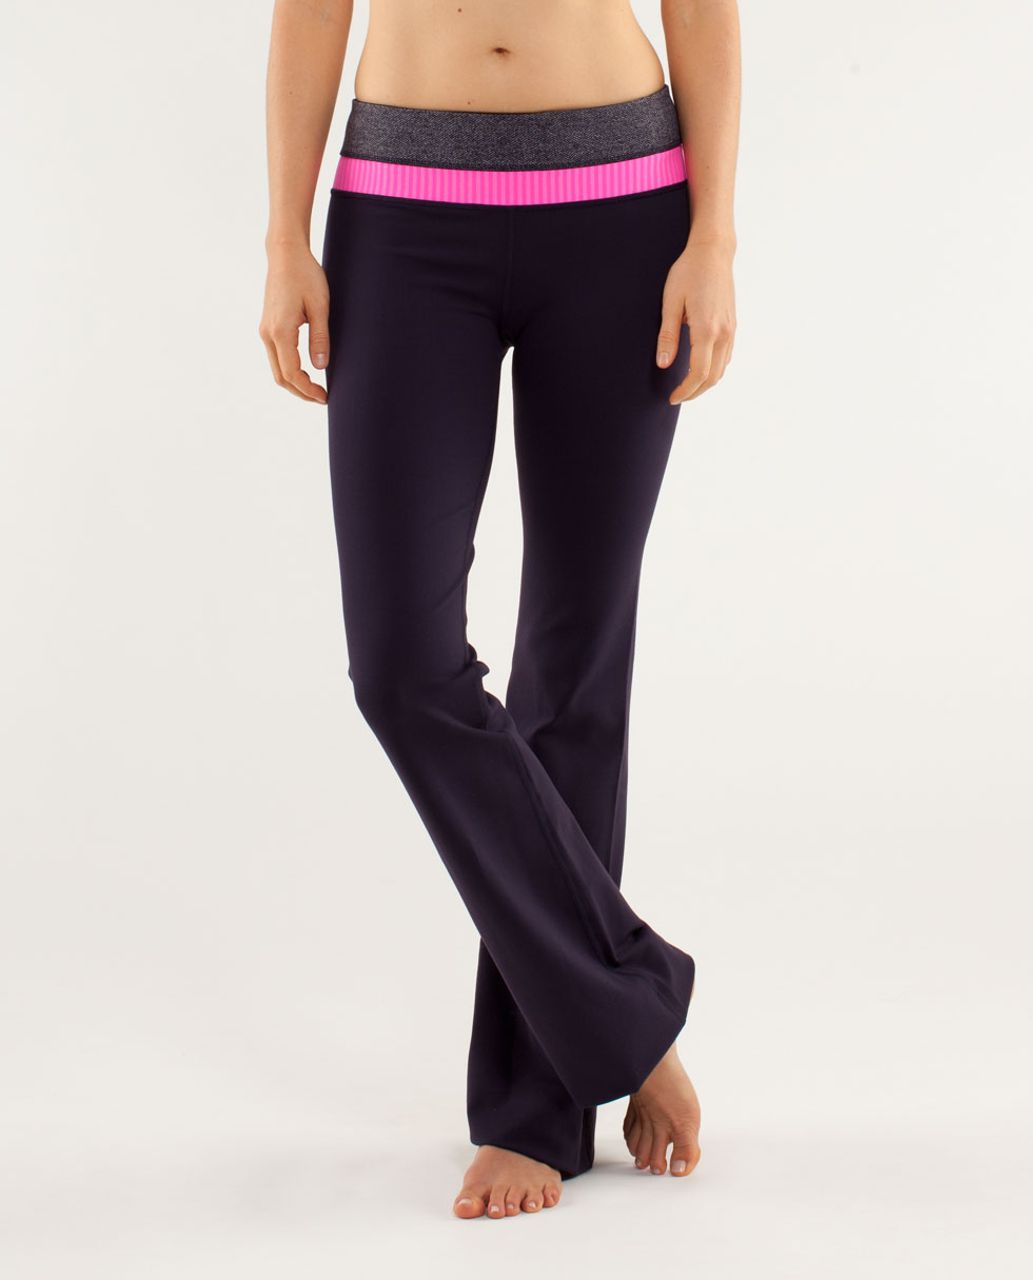 Lululemon Groove Pant *Slim (Tall) - Black Swan / Herringbone Black Swan / Slope Stripe Raspberry Glo Light